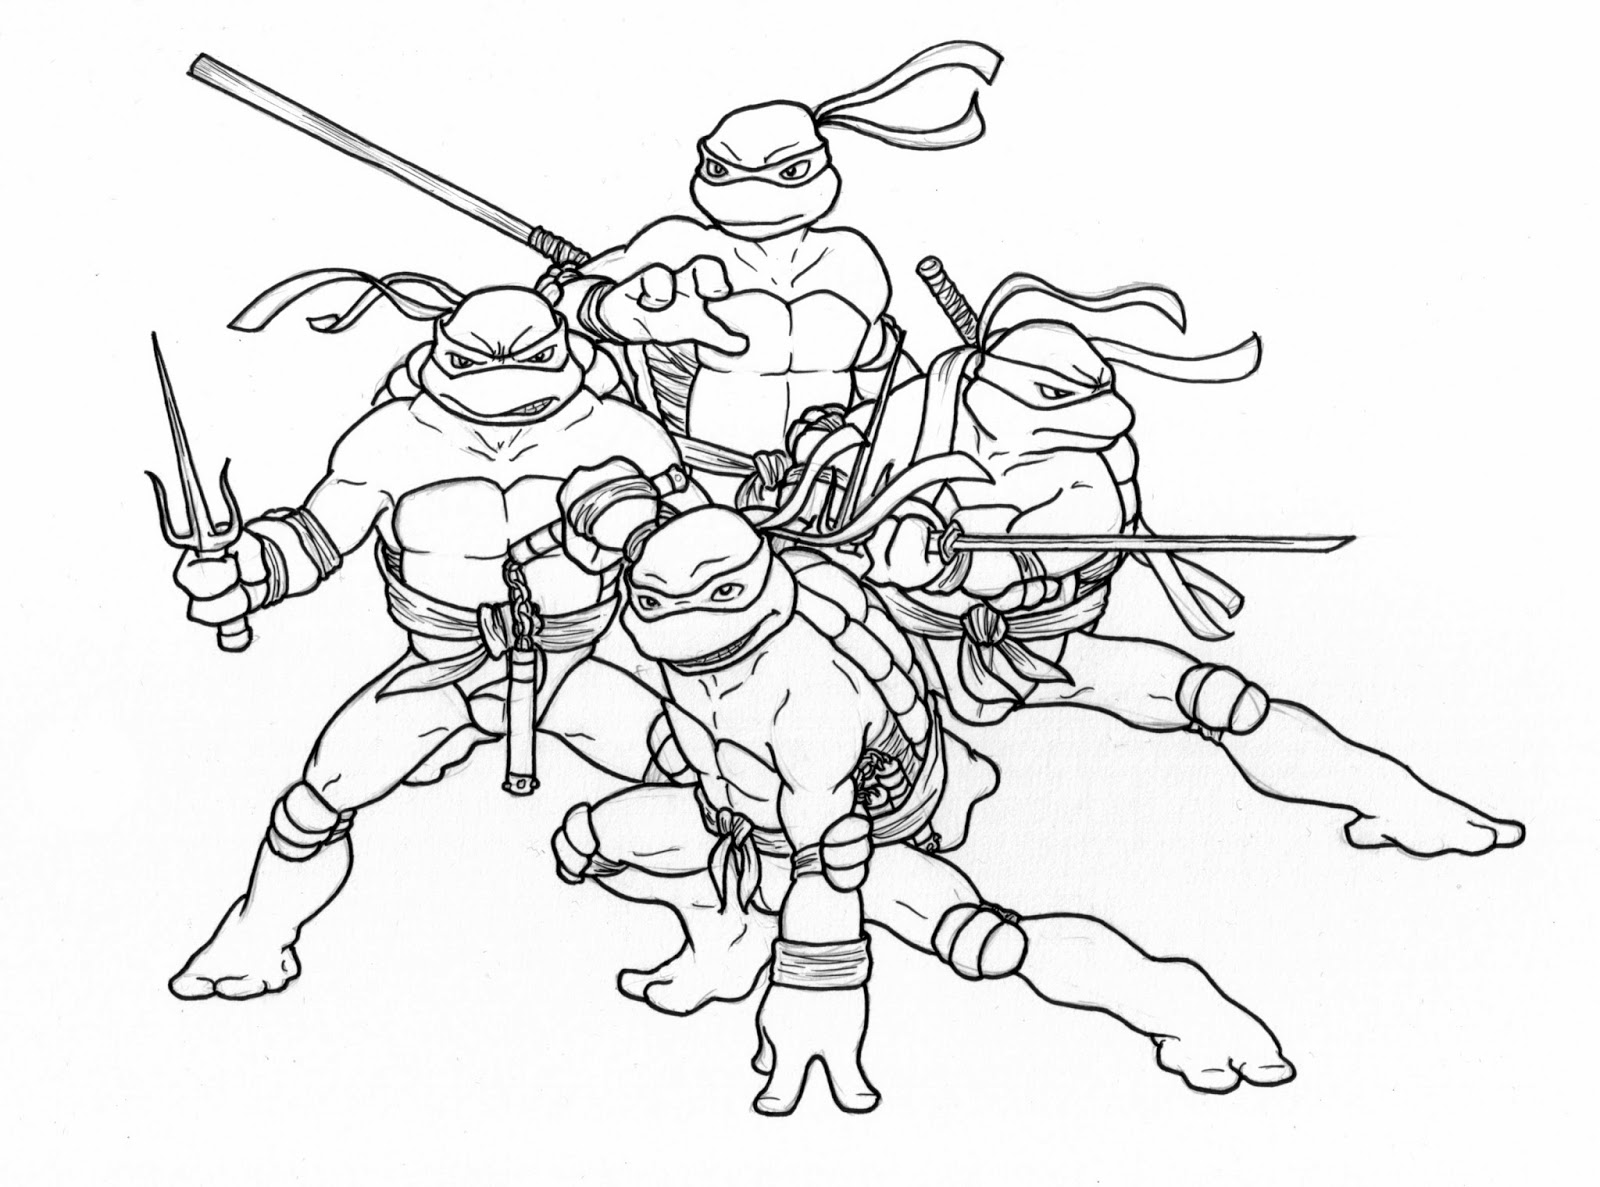 color ninja turtles 2017 10 01 coloring pages galleries ninja color turtles